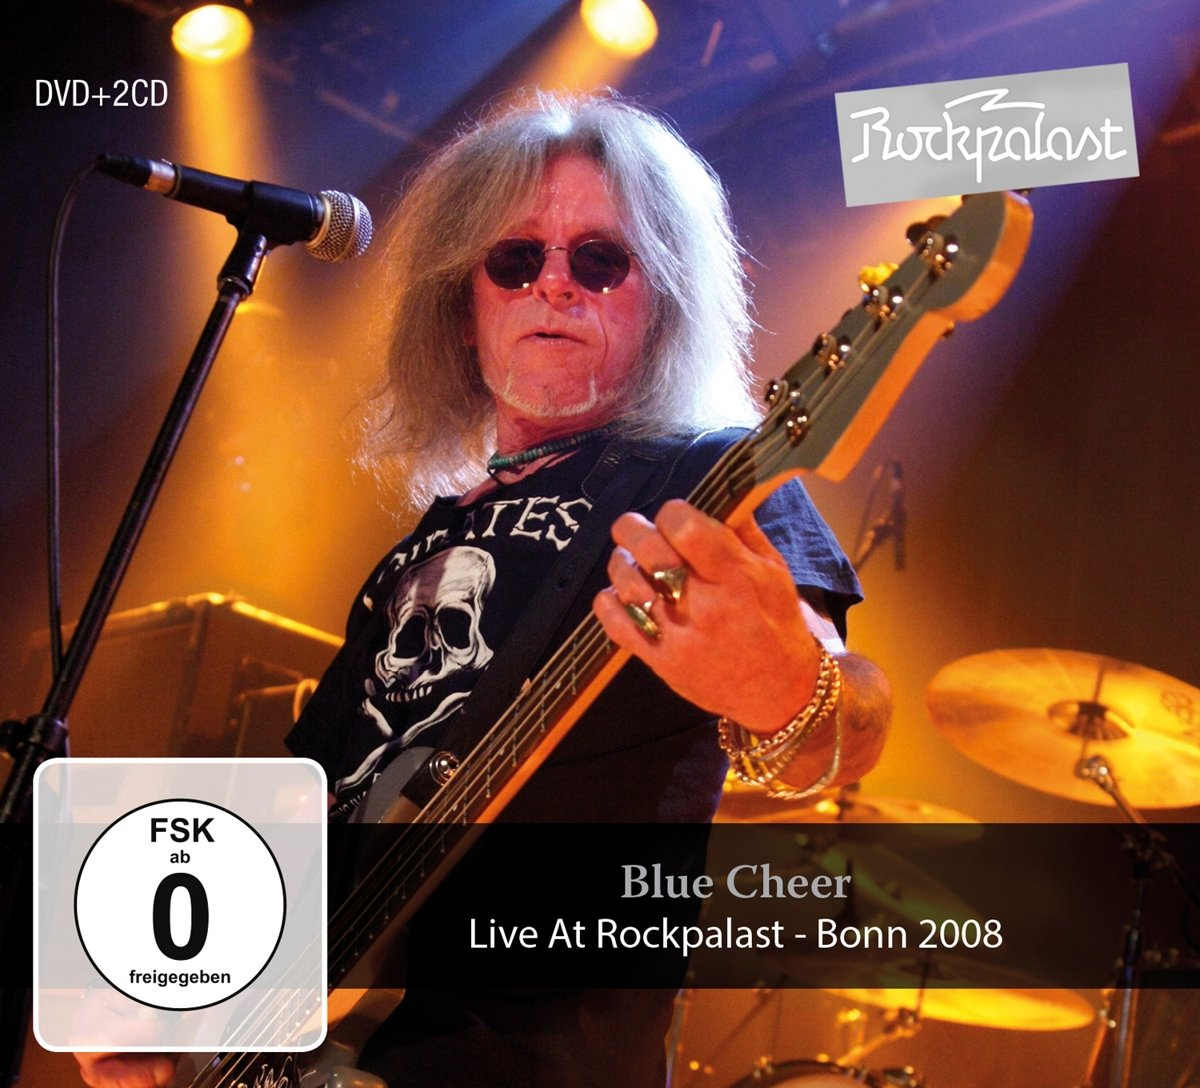 Blue Cheer - Live At Rock Palast Bonn 2008 - (MIG 90752) - DELUXE EDITION BONUS - 2CD - FLAC - 2017 - WRE Download